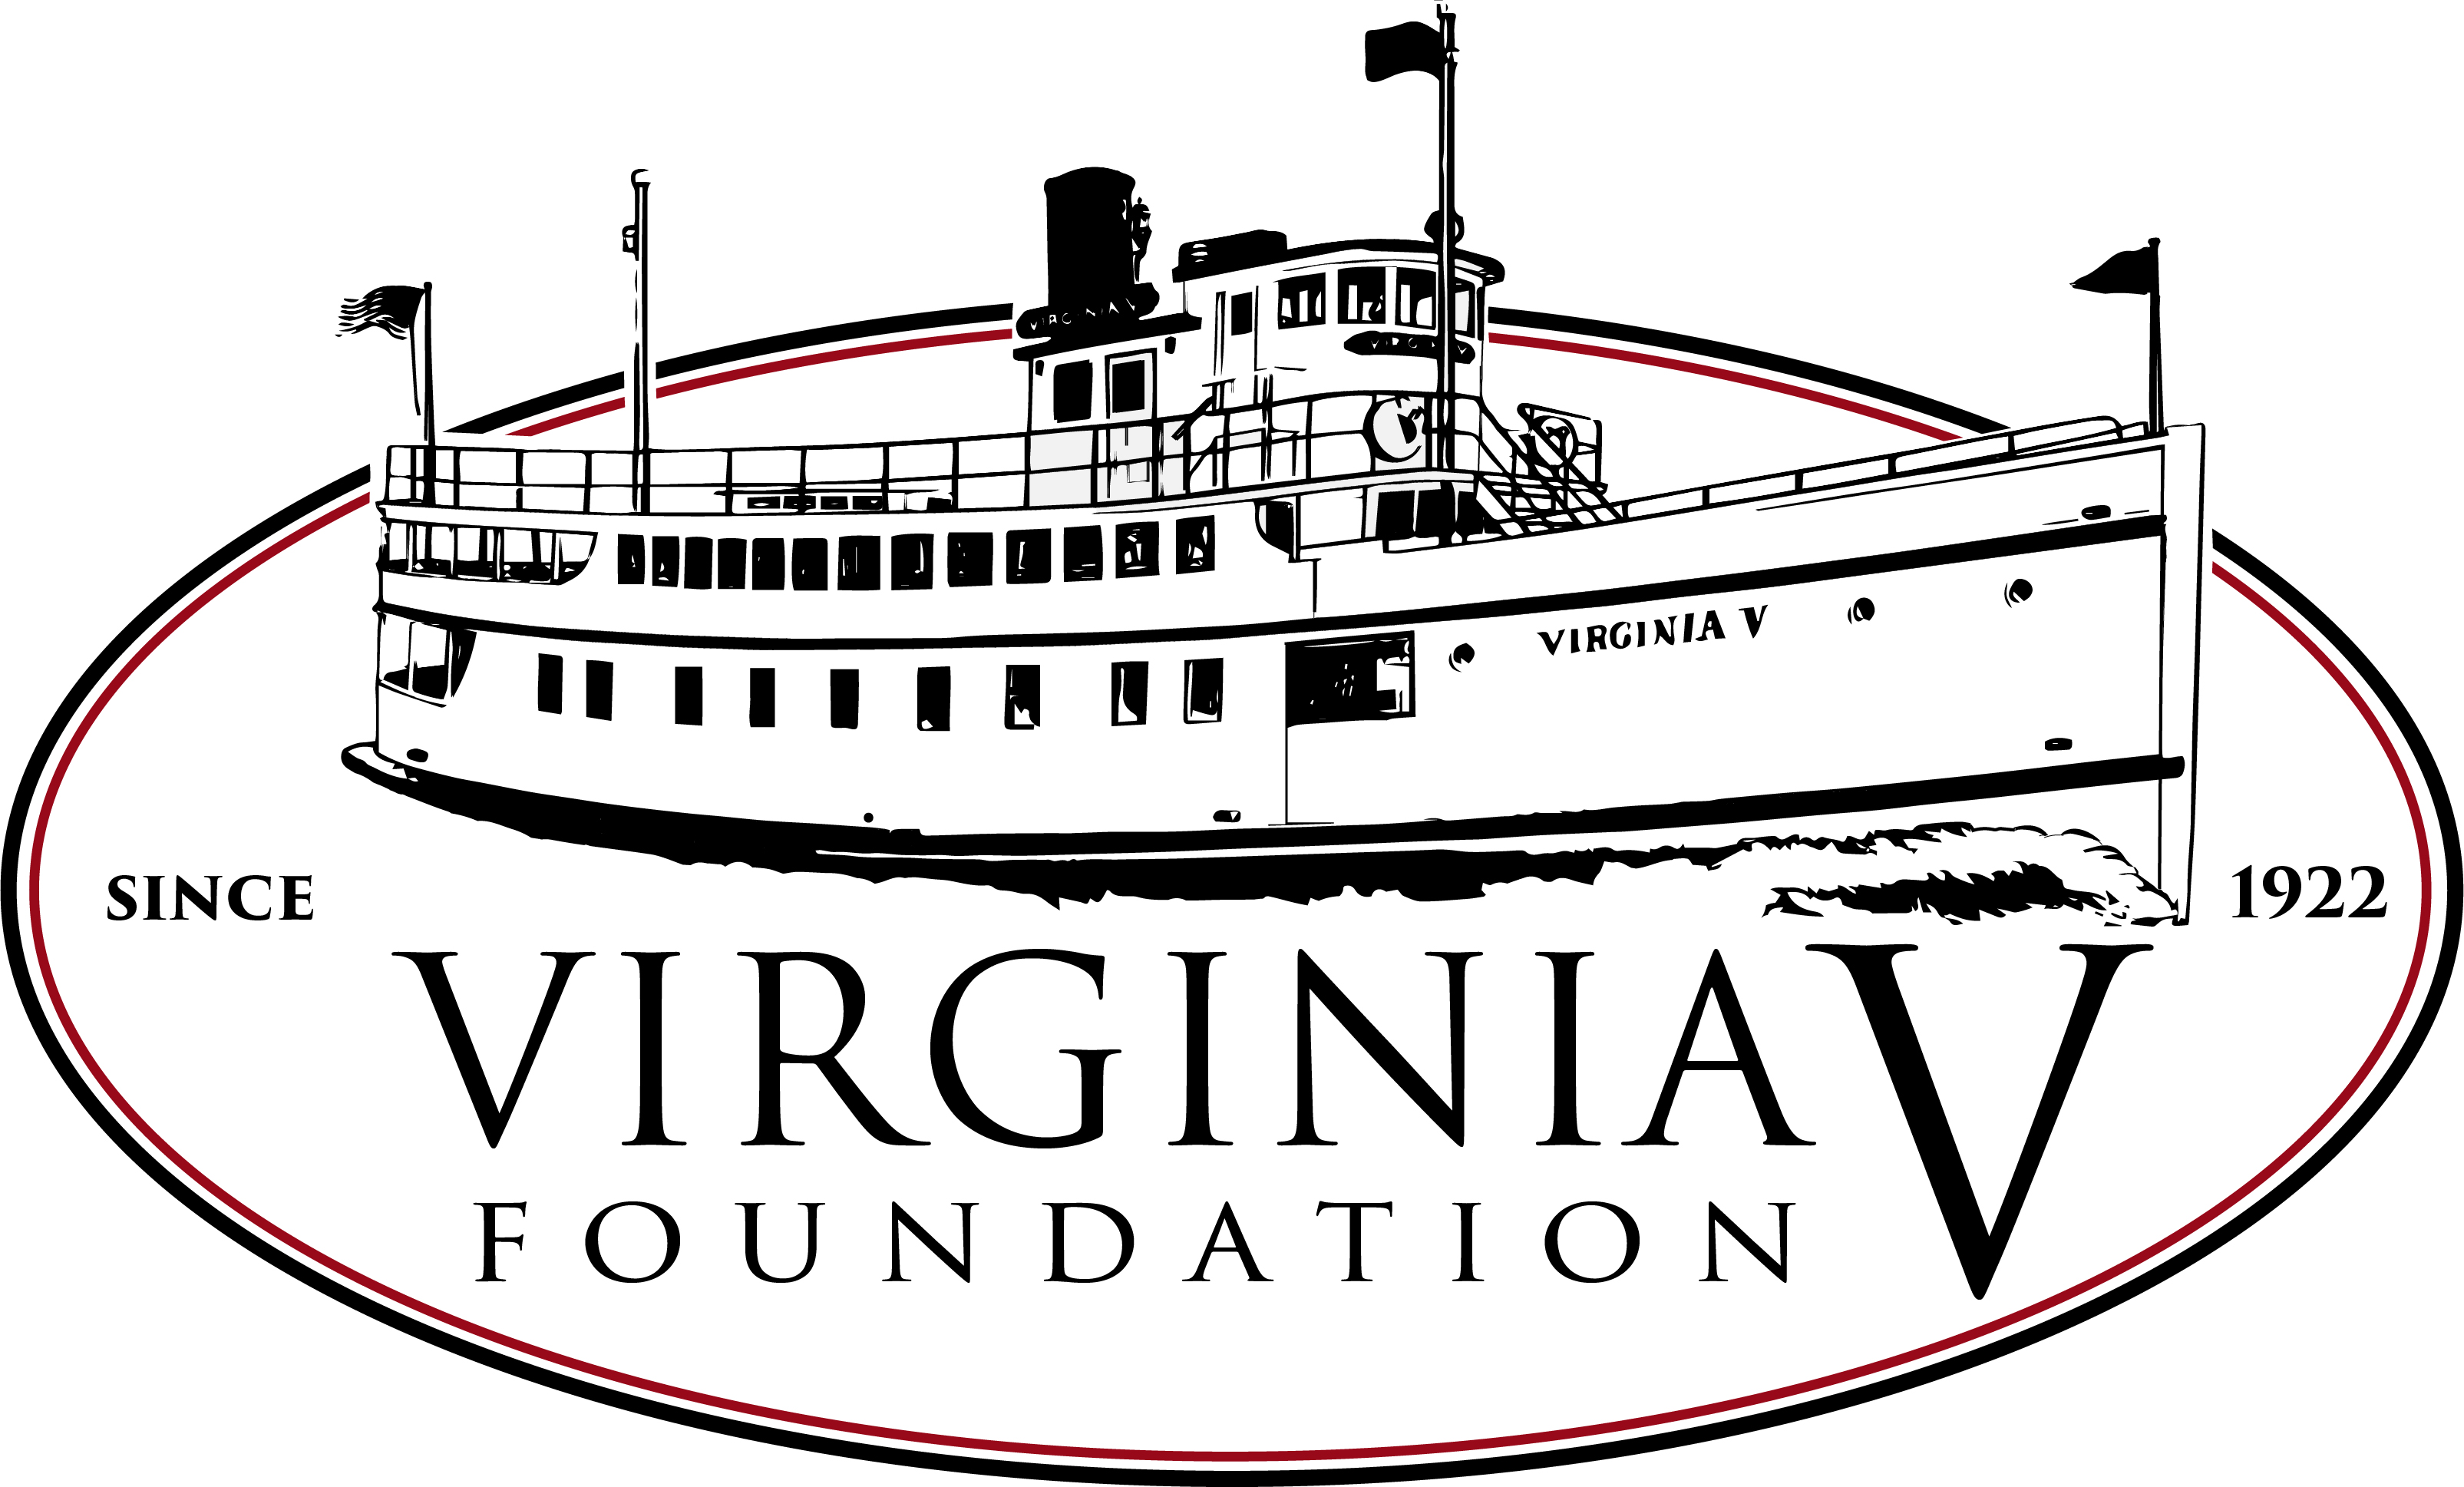 The Steamer Virginia V Foundation